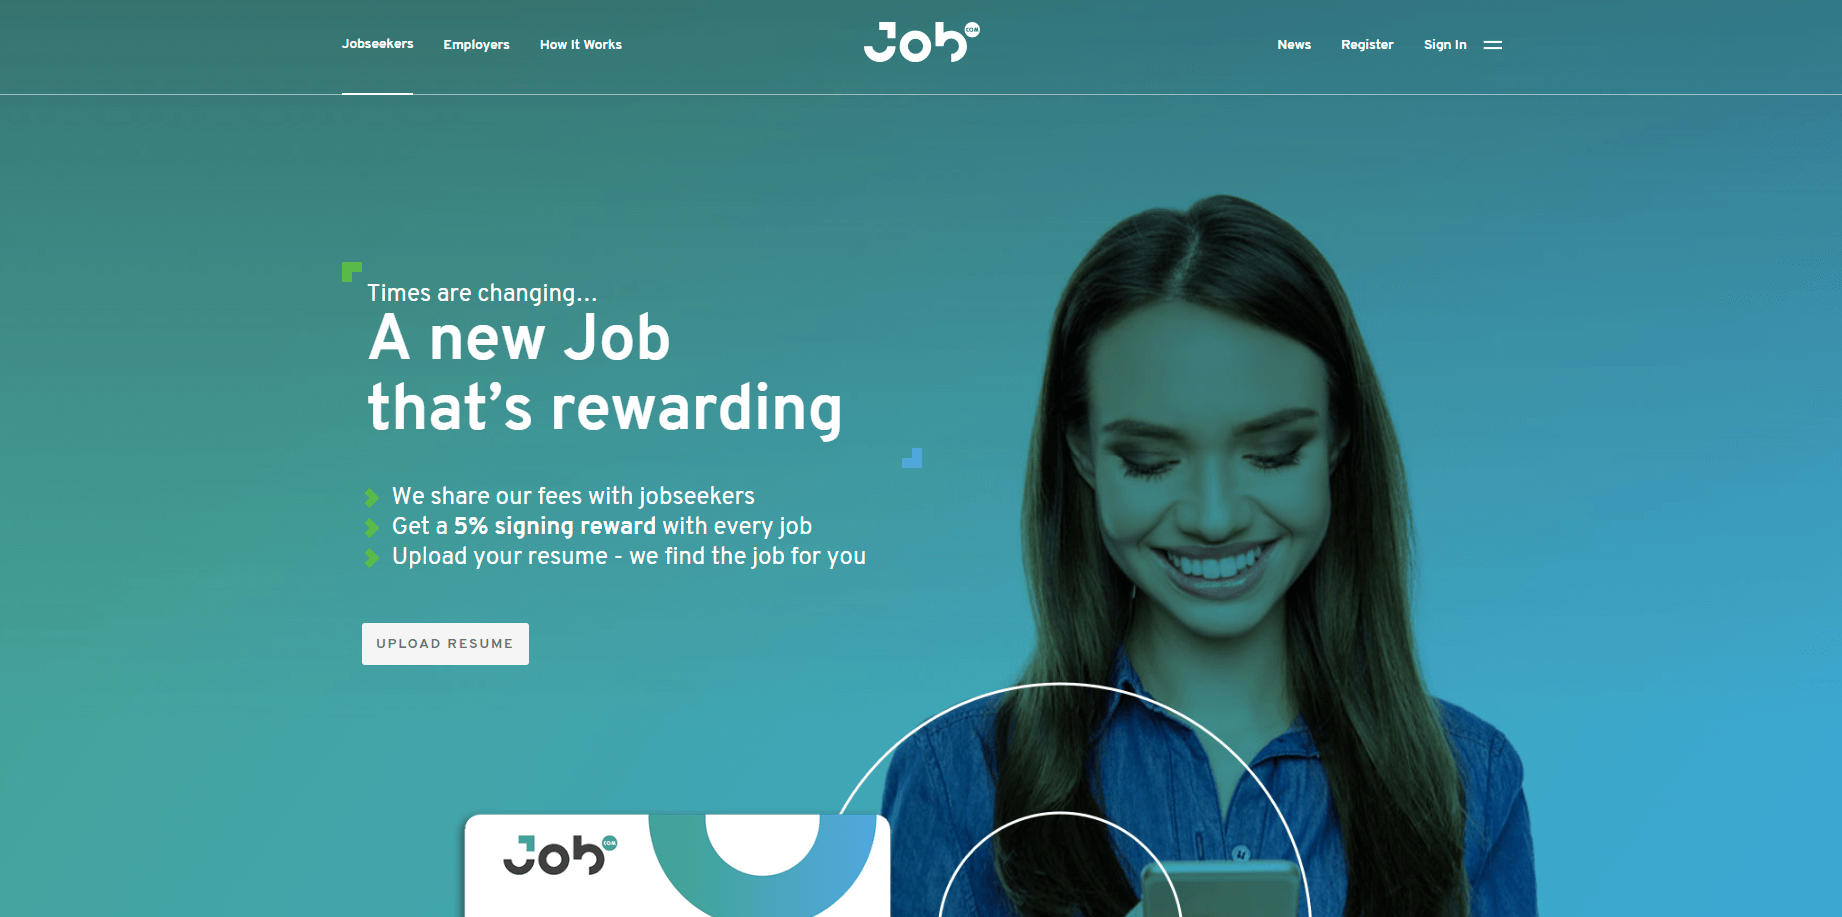 Click to go to Job.com